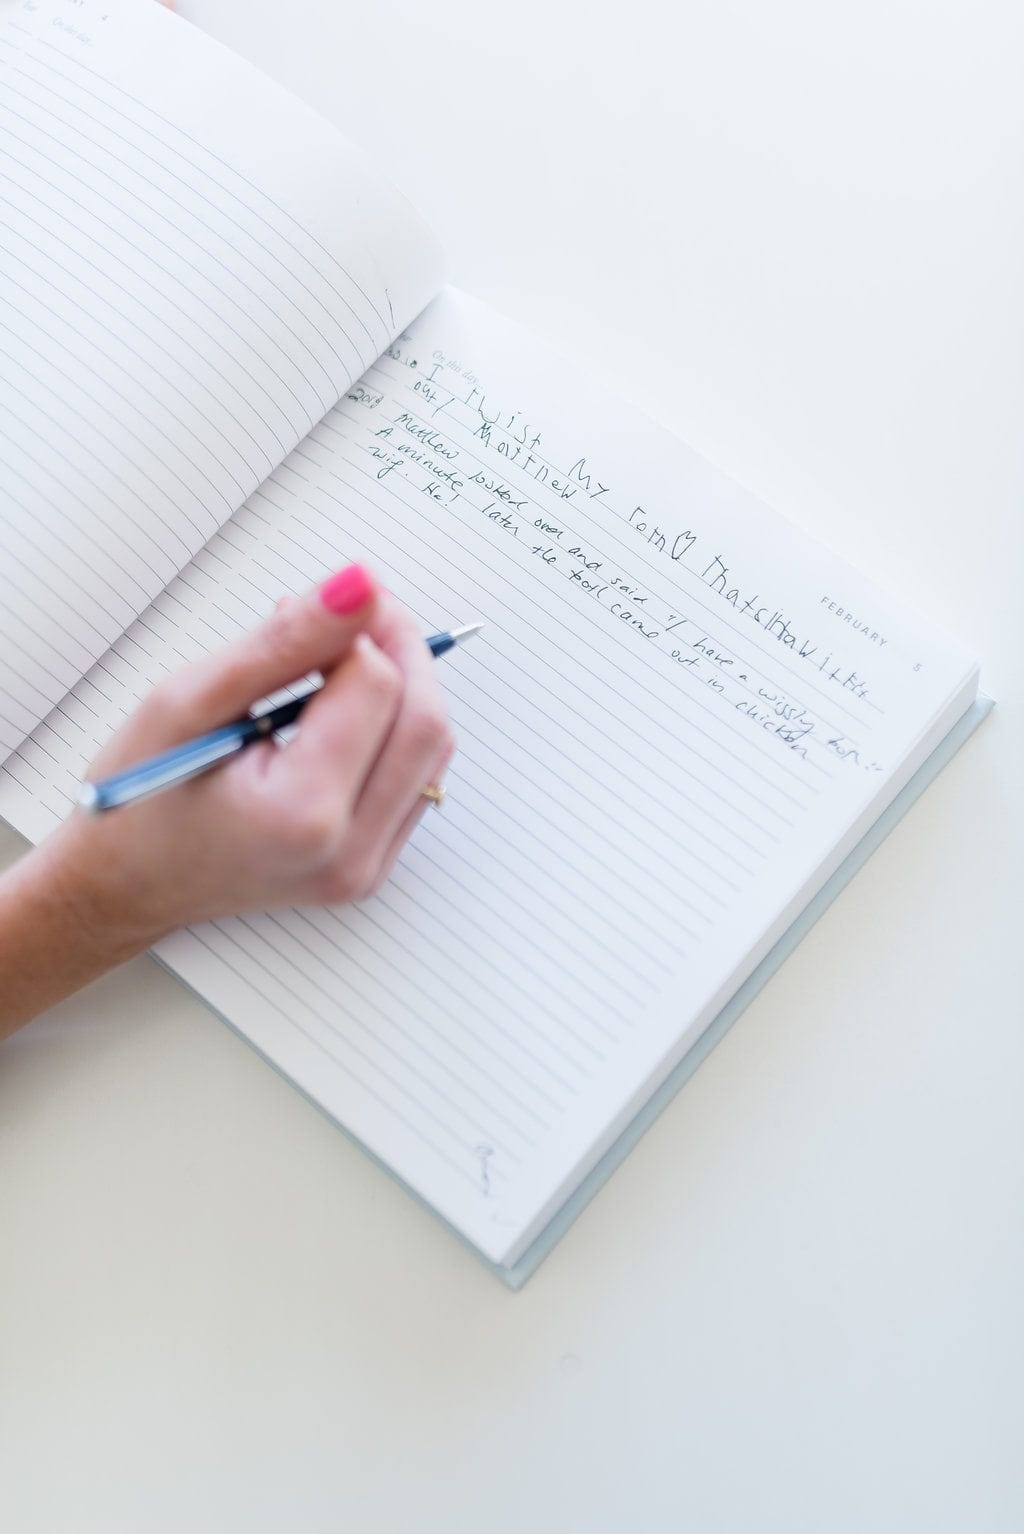 Daily diary without years listed so you can write down what you did each day to store over the years. A perfect creative Mother's Day gift idea!